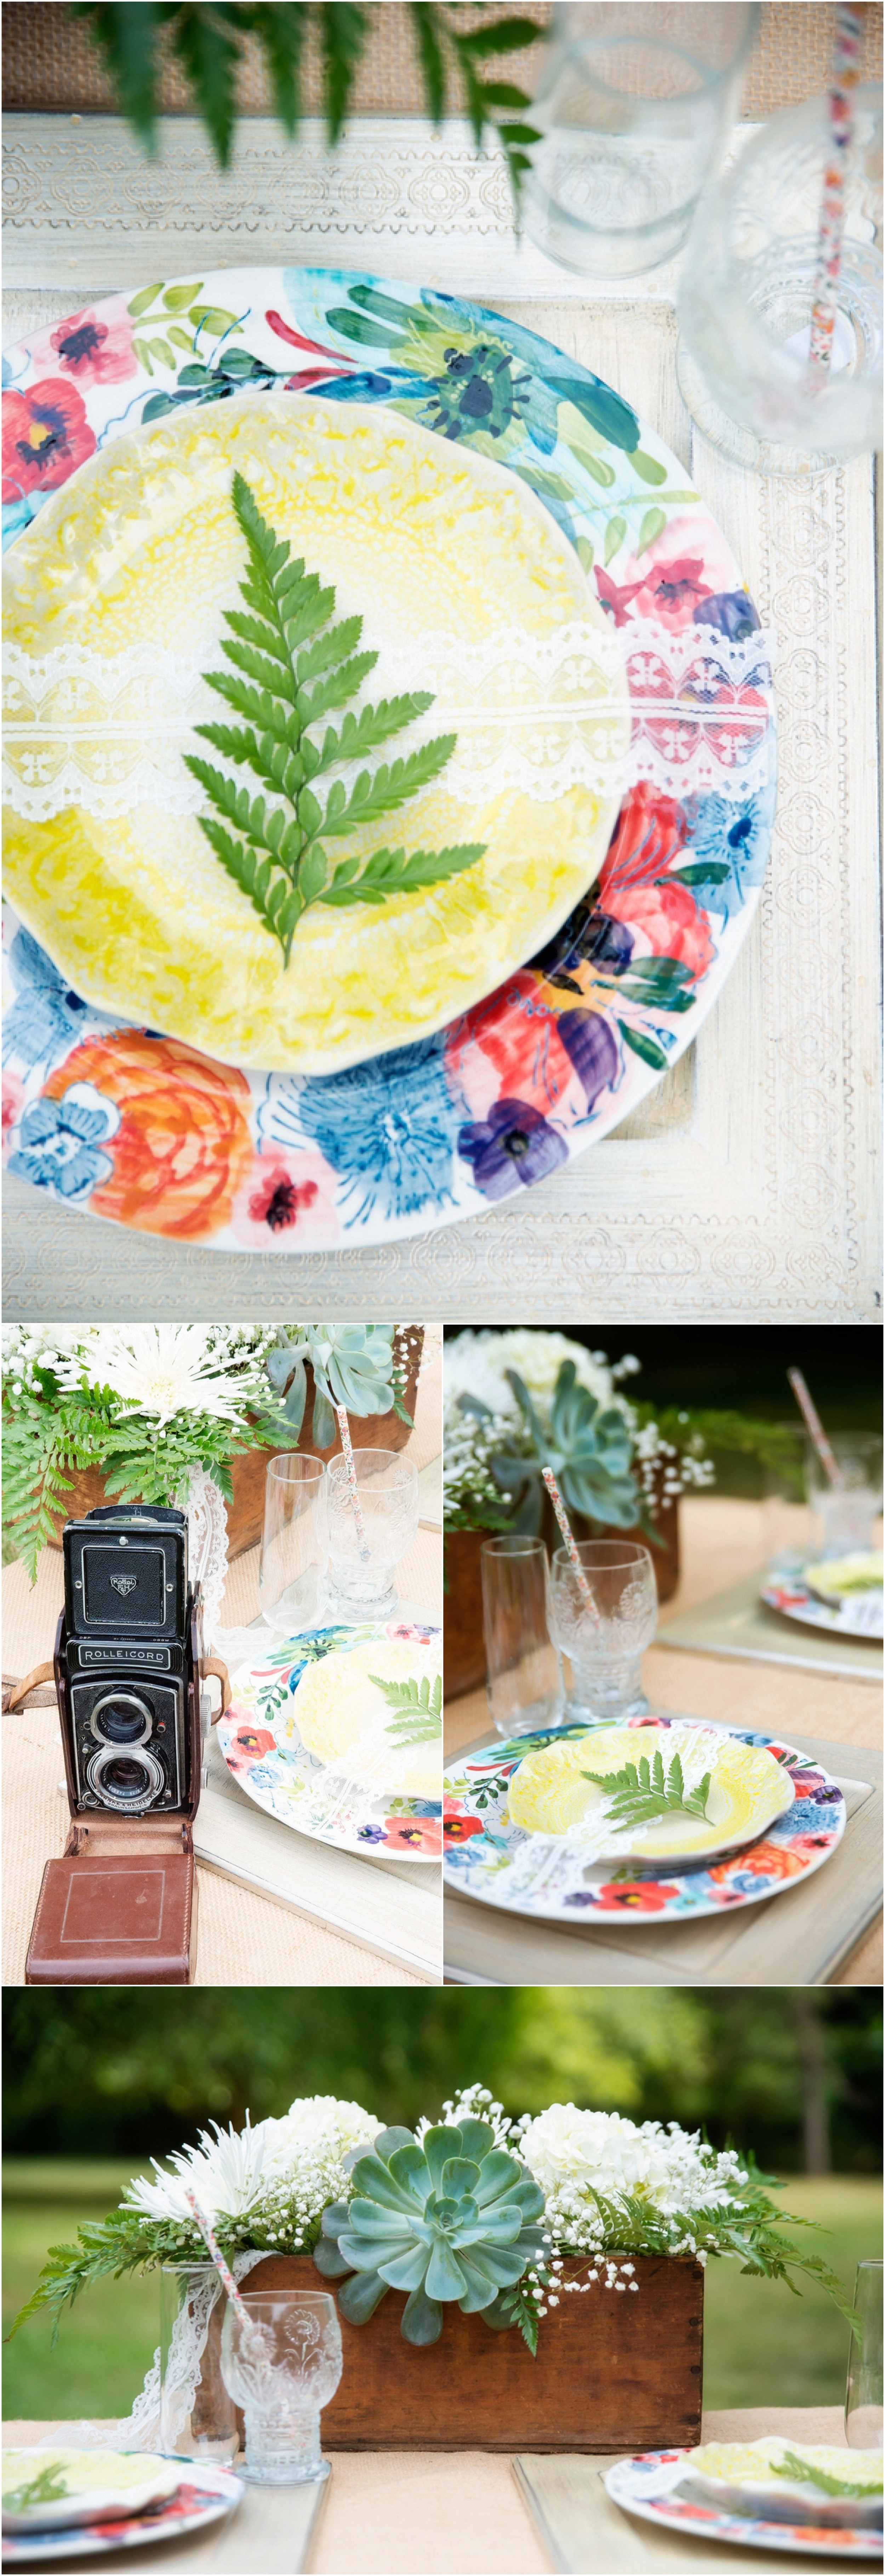 Charlottesville_Wedding_Photographer_Becca B Photography_Styled Shoot Feature_The Perfect Palette1